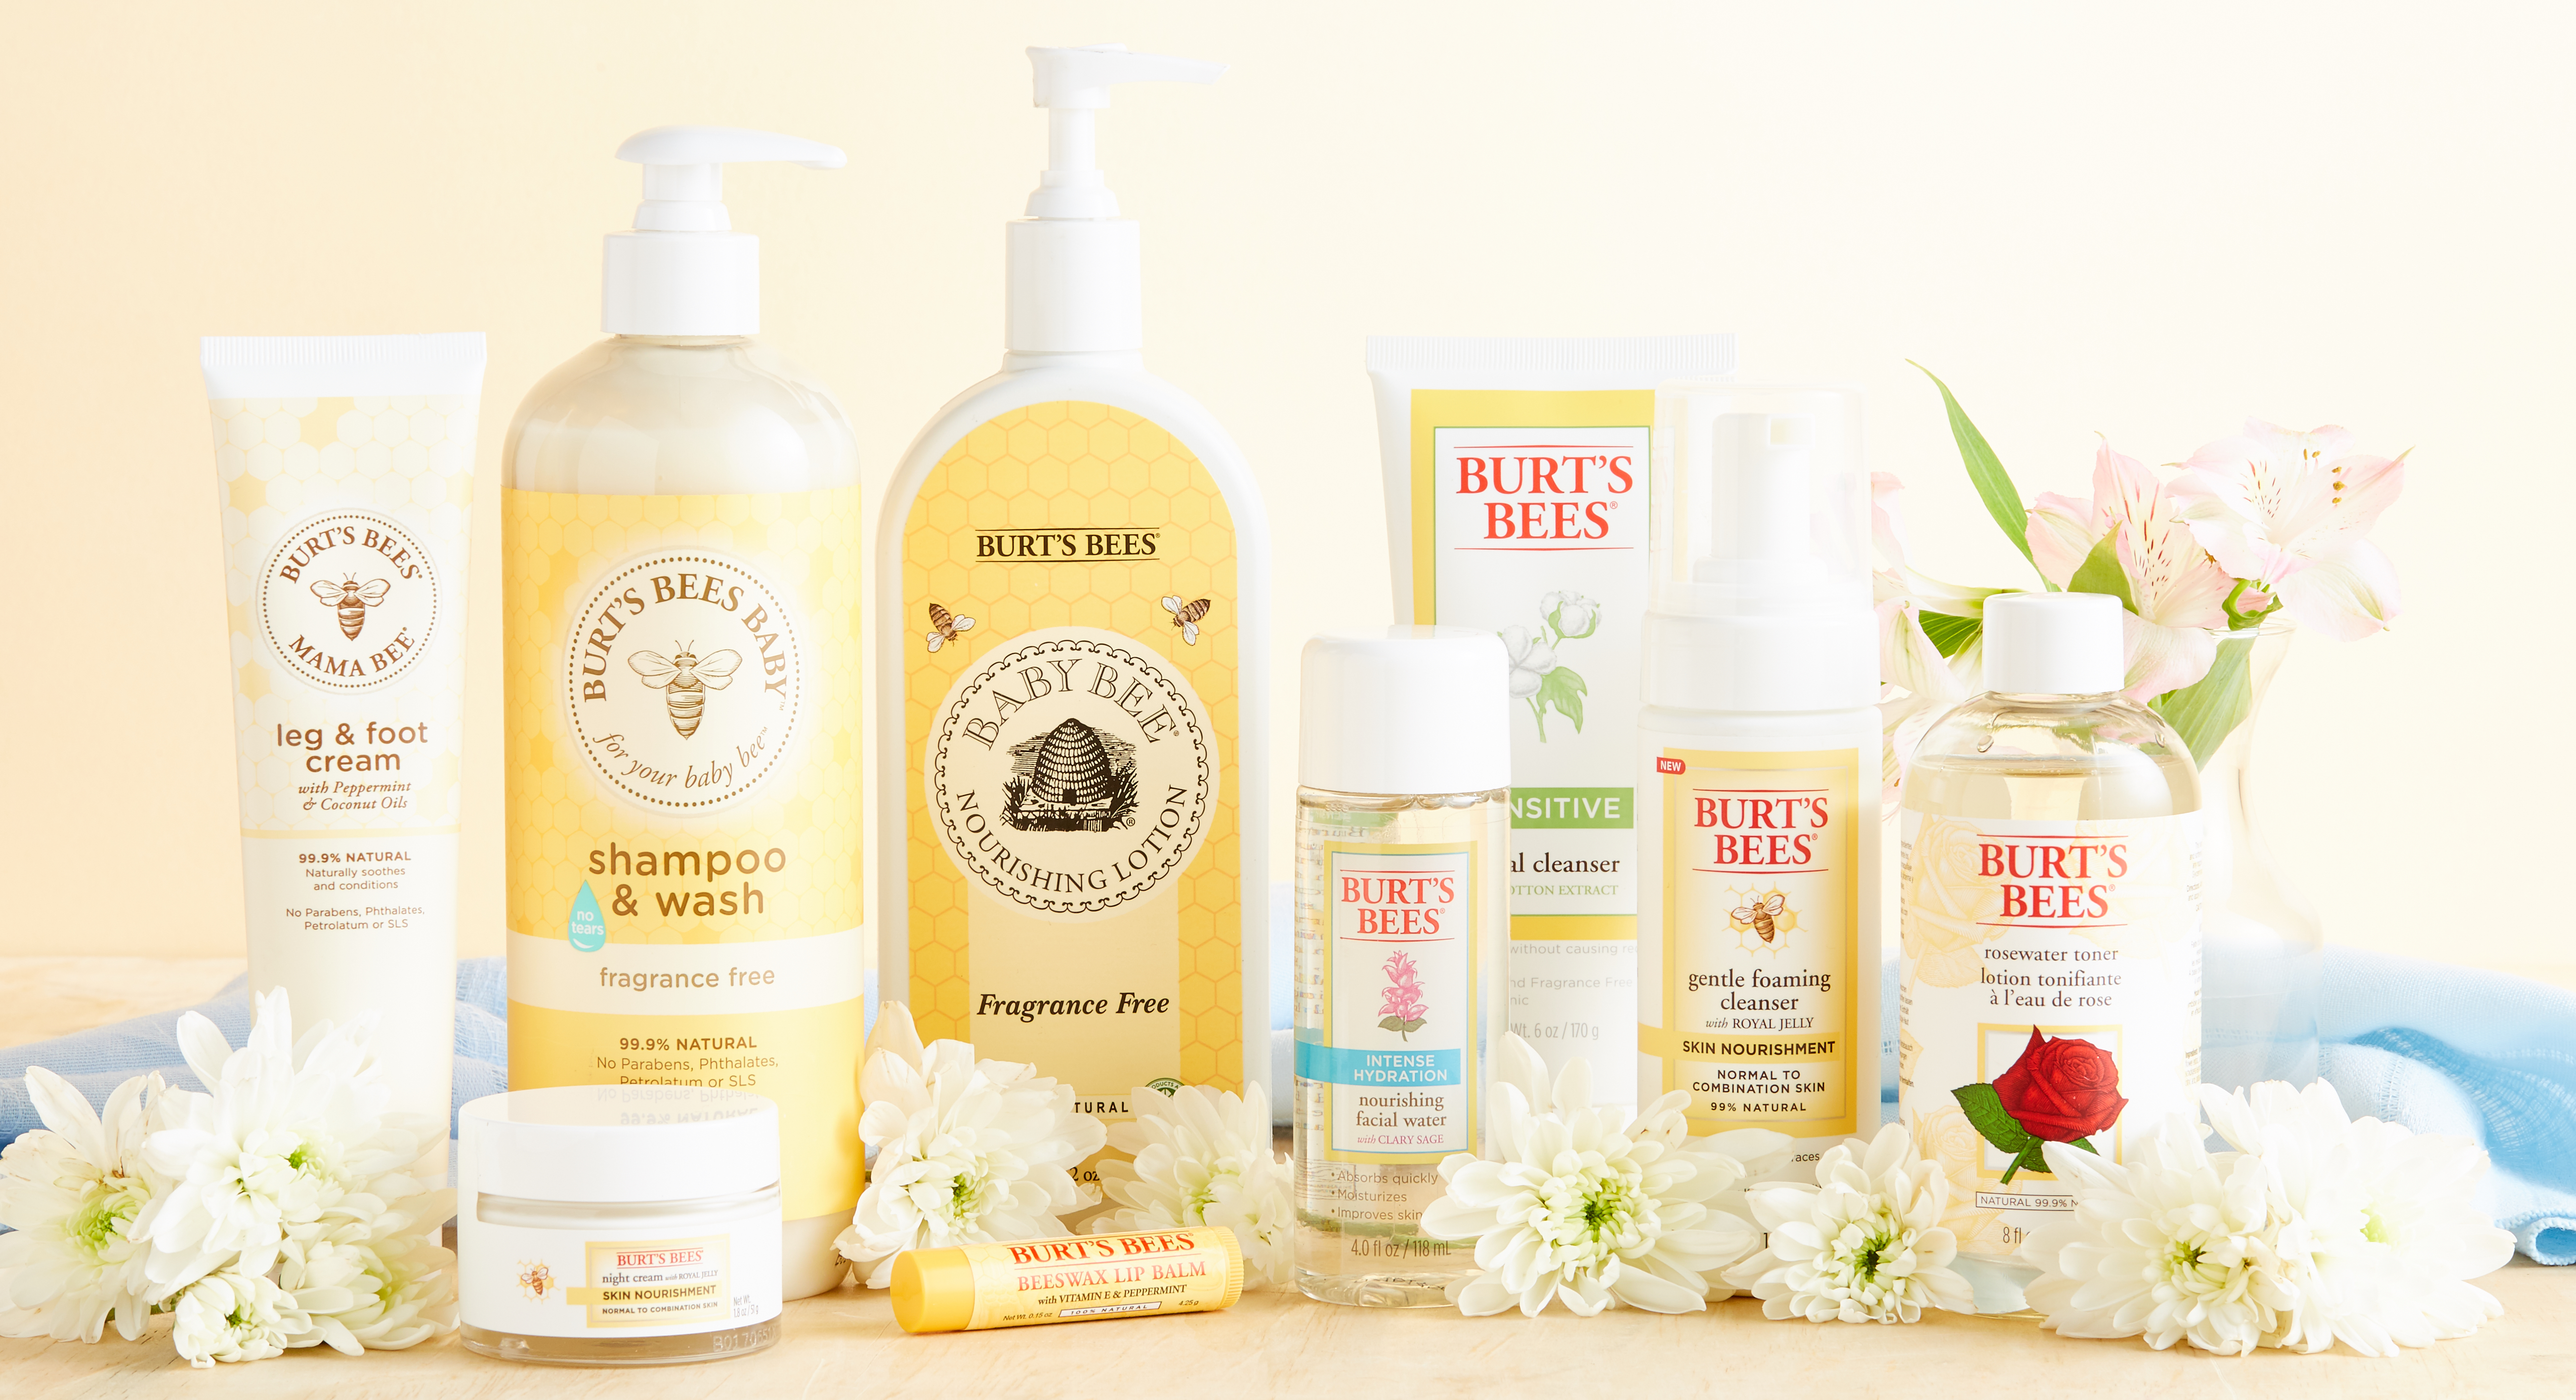 This Beauty Company Helps The Planet One Bee At A Time